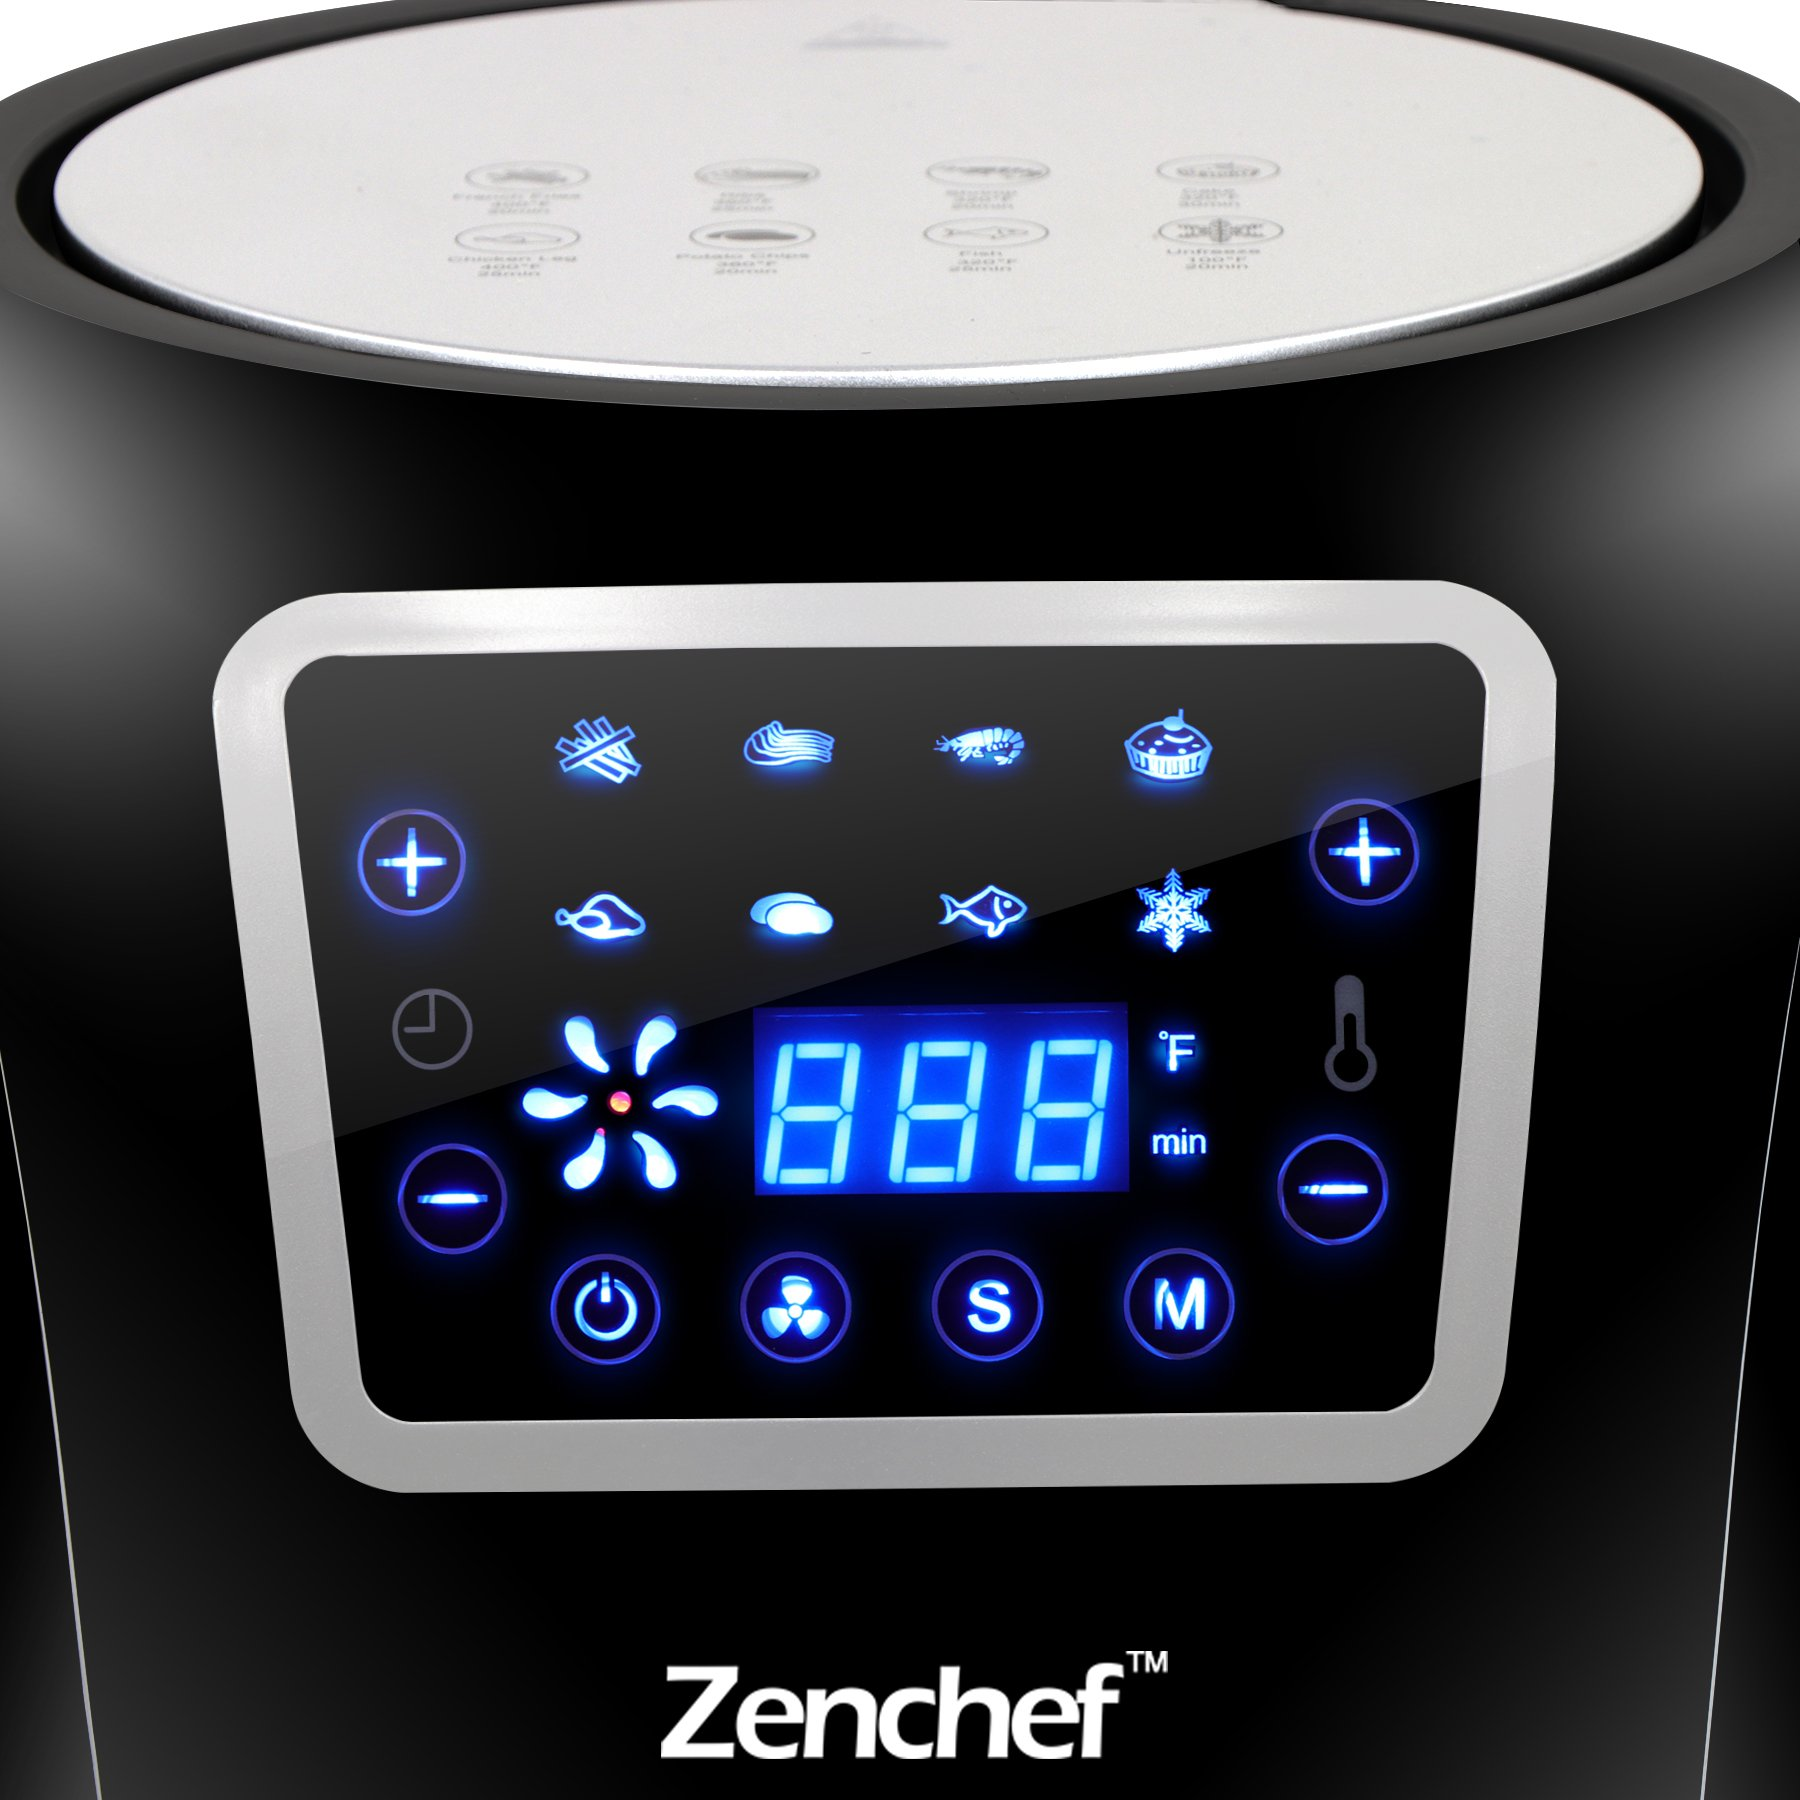 Super Deal Zenchef Pro Xxl Hot Air Fryer Family Size 5 8